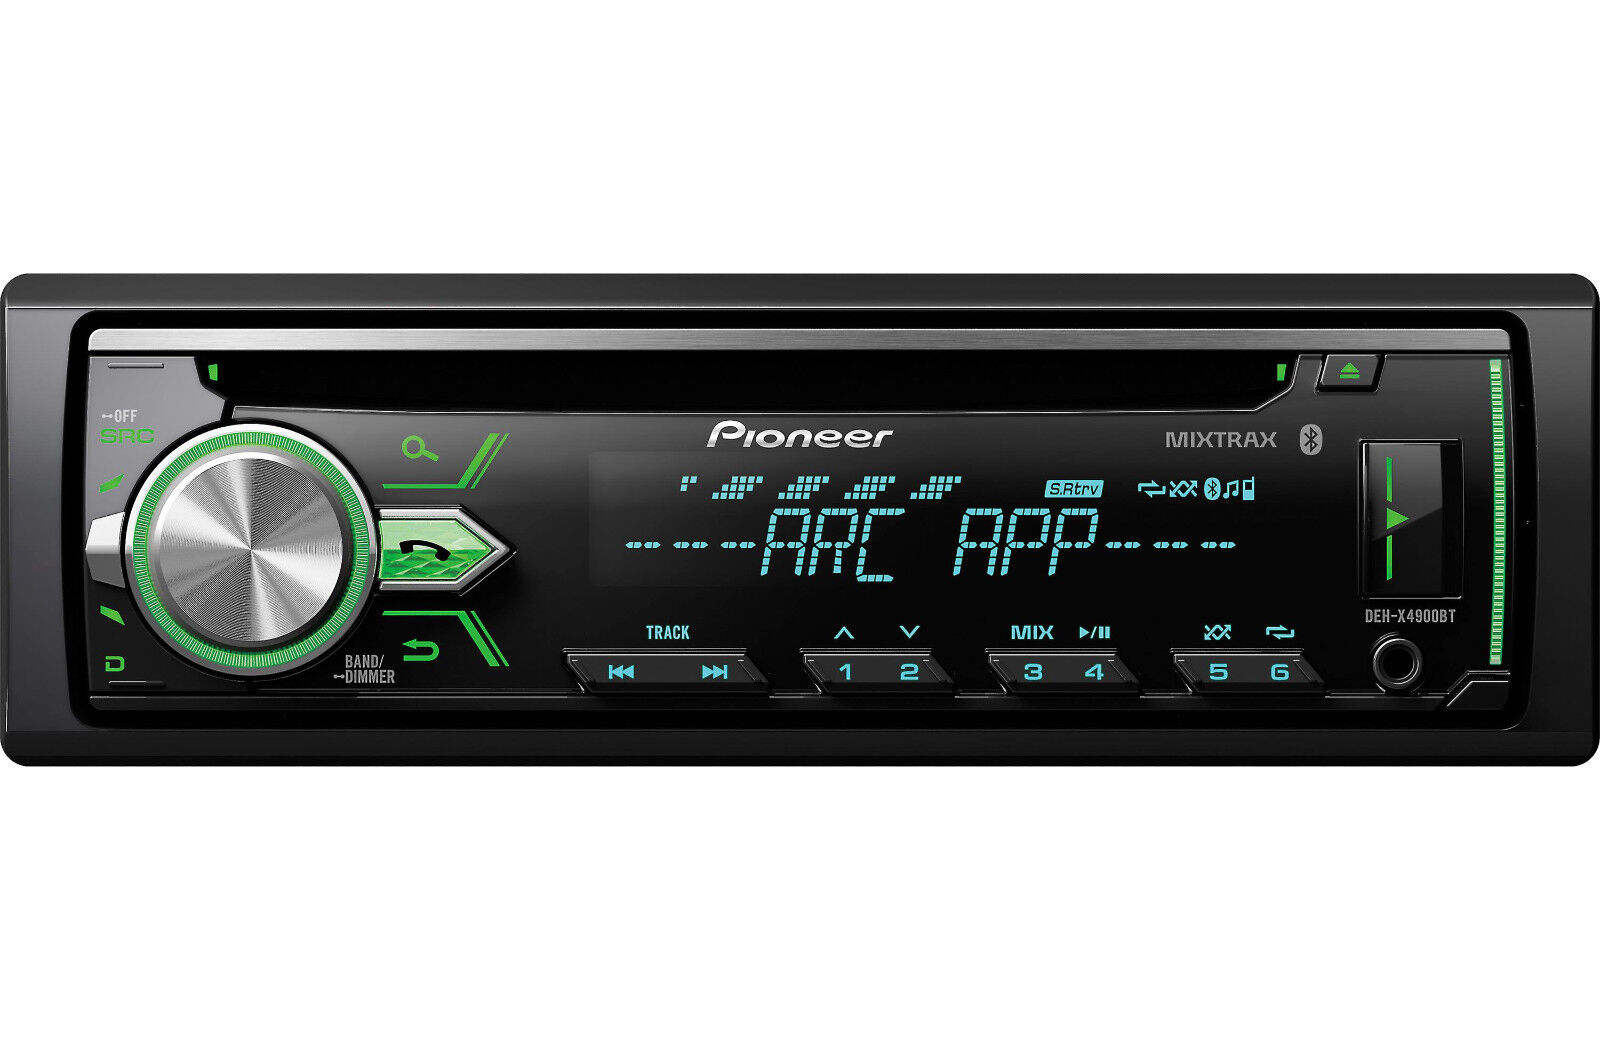 Pioneer DEH-X4900BT CD/MP3/WMA Player Bluetooth MIXTRAX iPhone Android Control